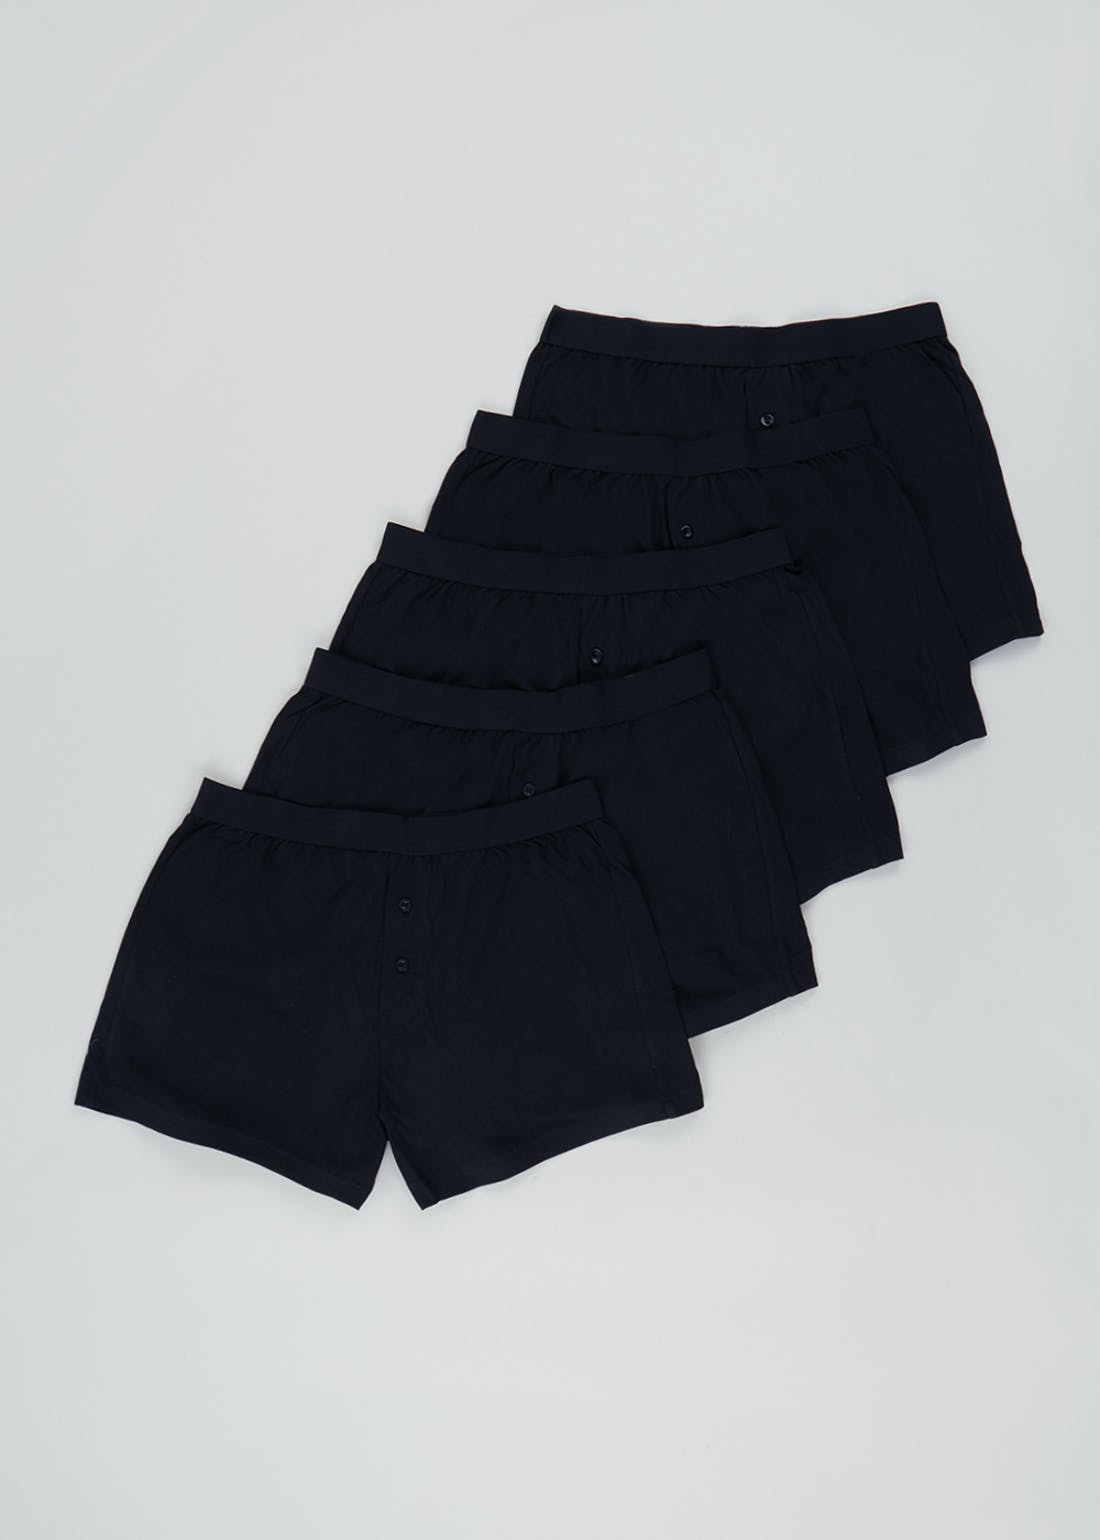 5 Pack Loose Fit Boxers